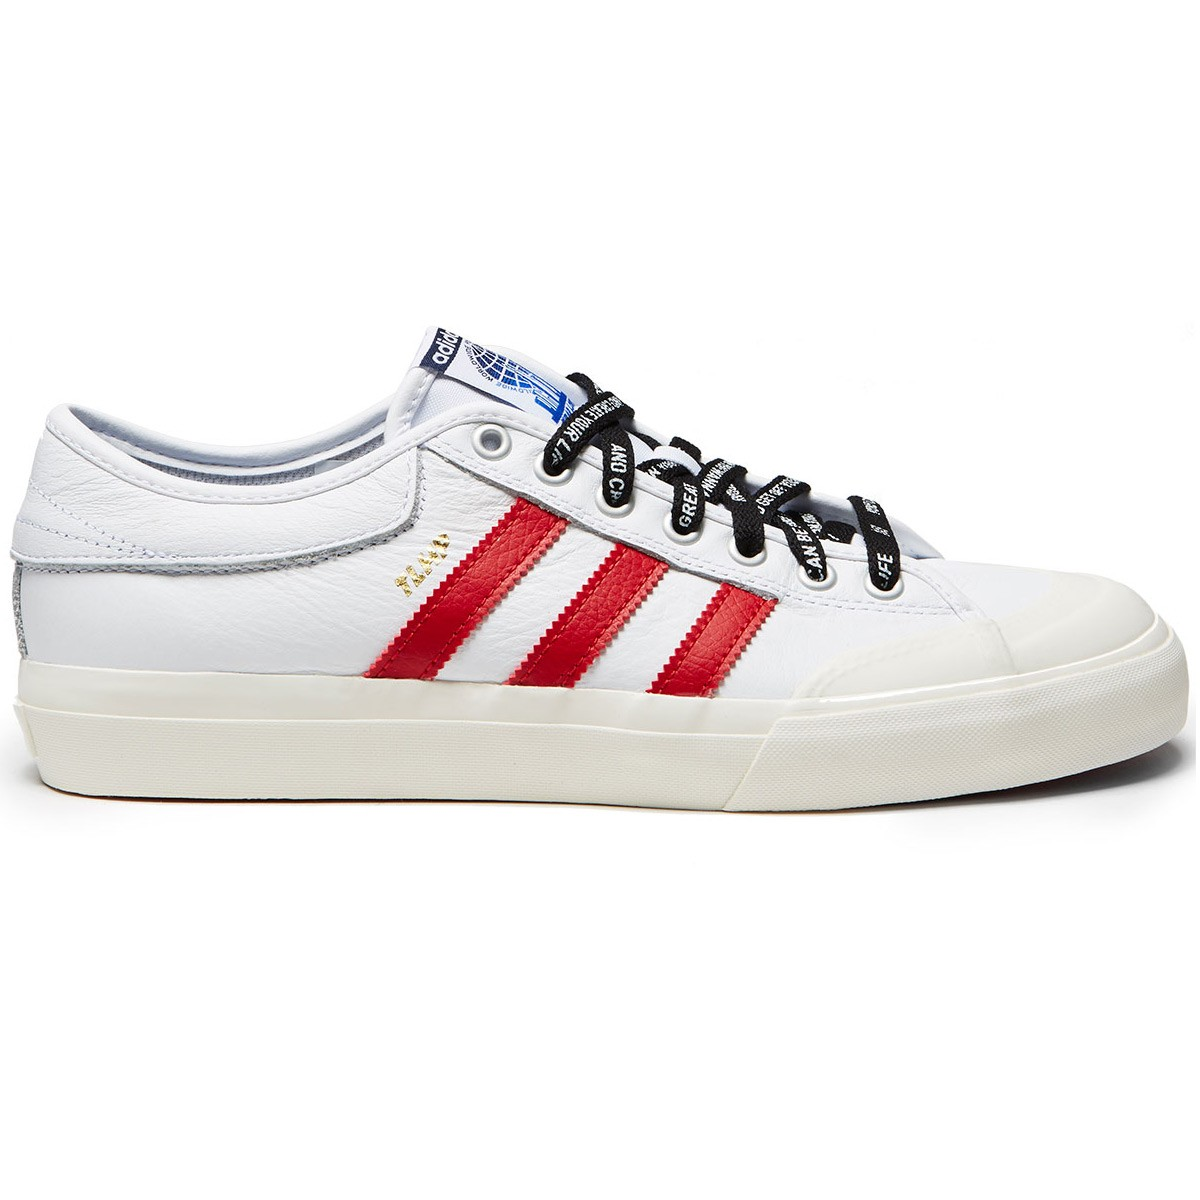 Trap Lord Adidas Shoes For Sale